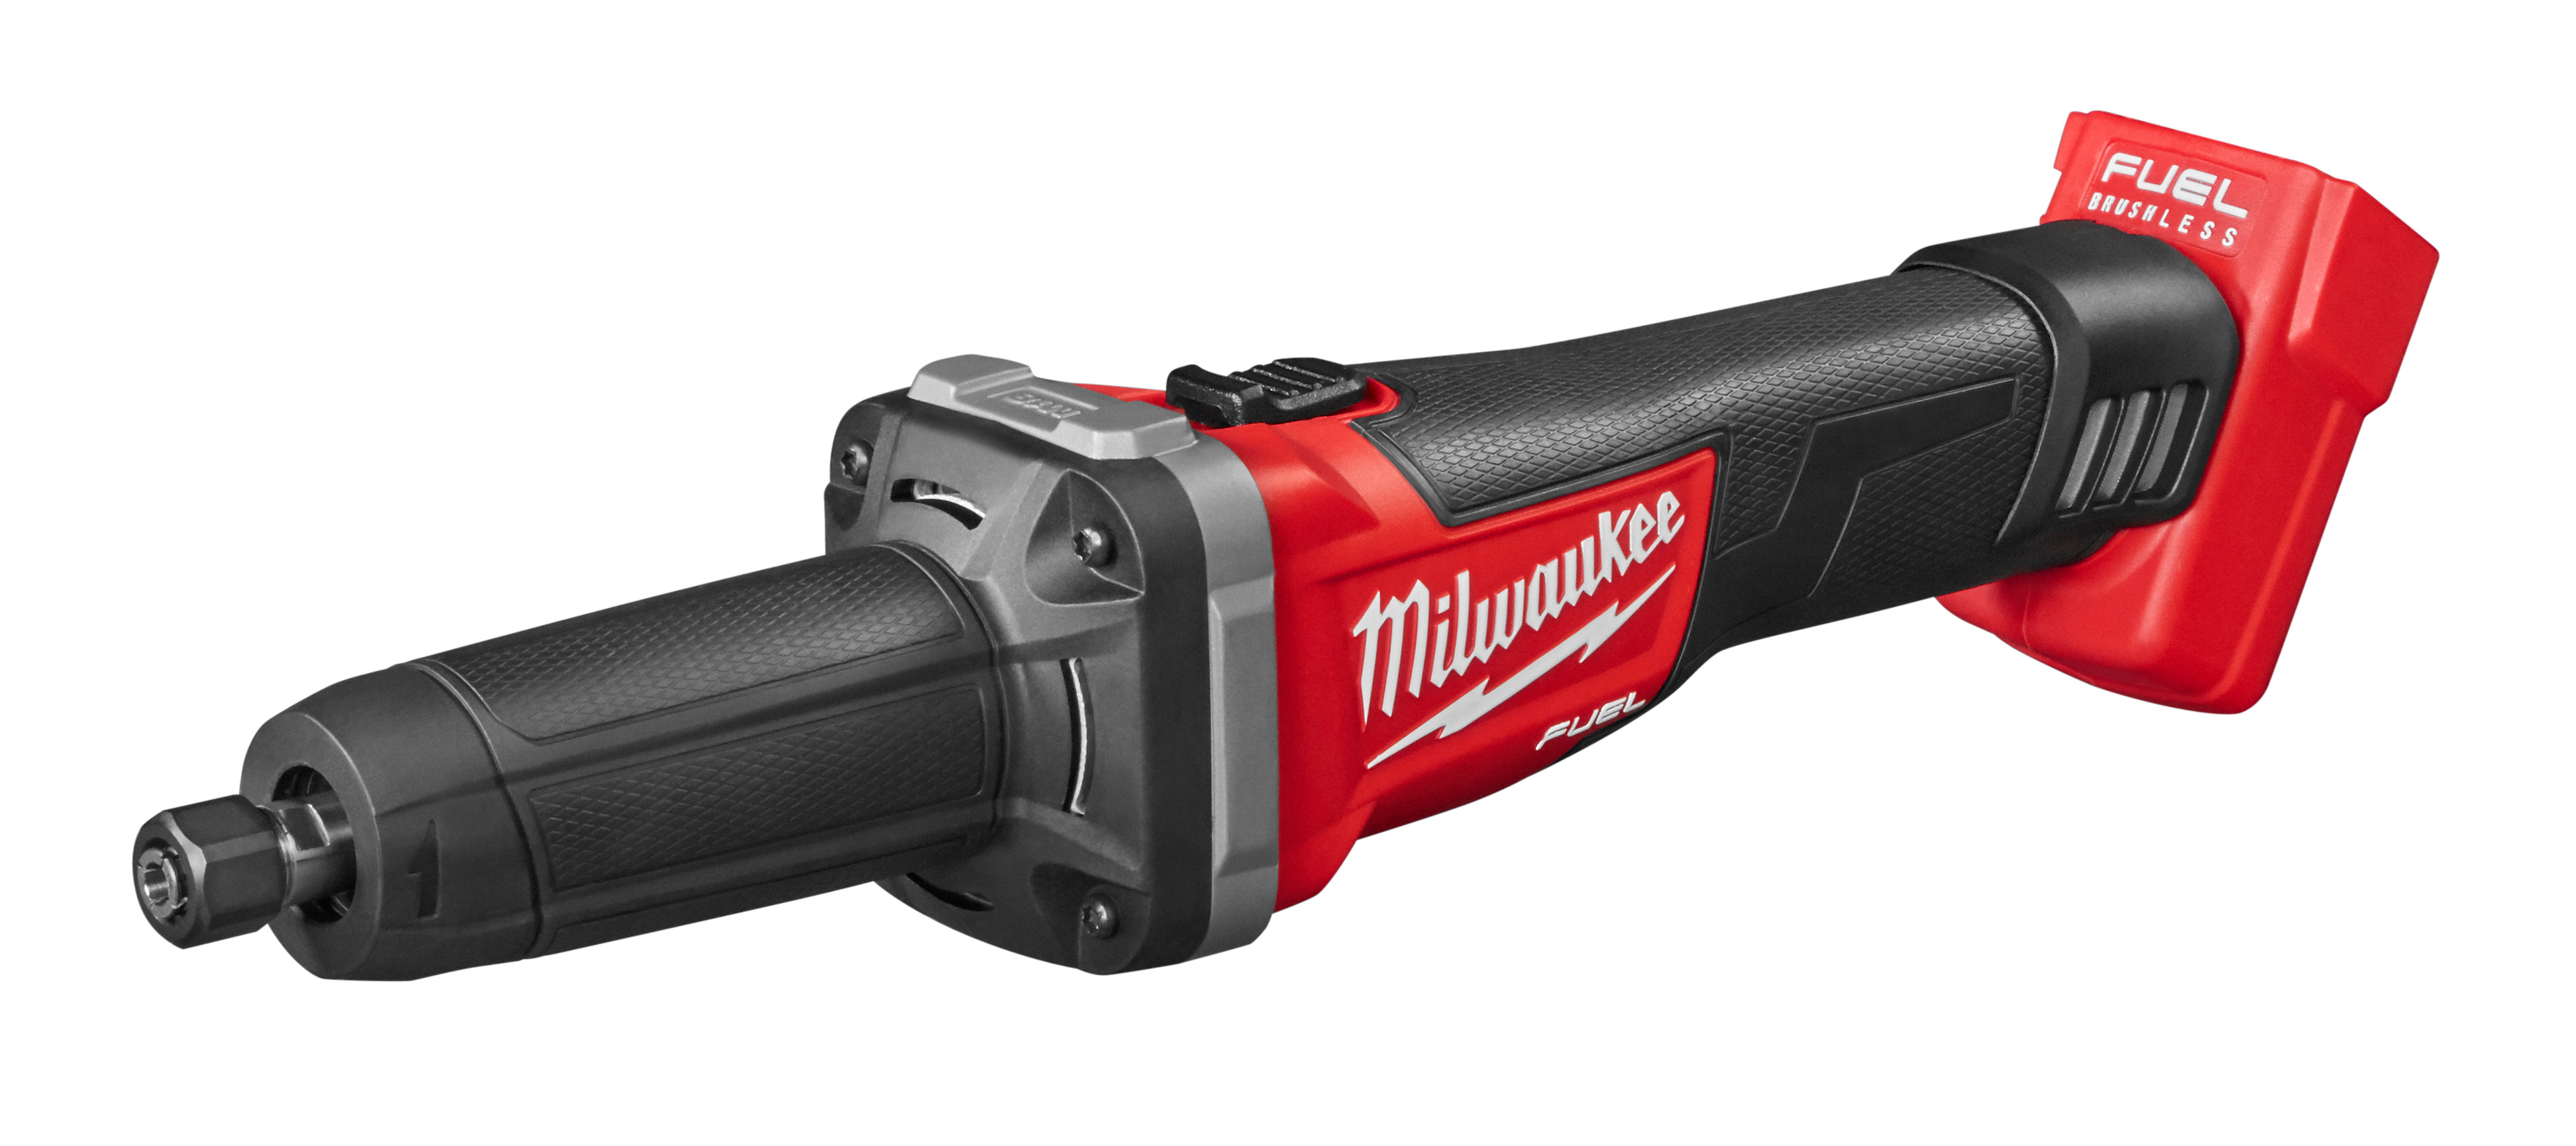 Milwaukee® M18™ 2680-22 Type 27 Cordless Cut-Off Grinder Kit, 4-1/2 in Dia Wheel, 18 VDC, Lithium-Ion Battery, Debris Baffles, 2 Batteries, Paddle Switch